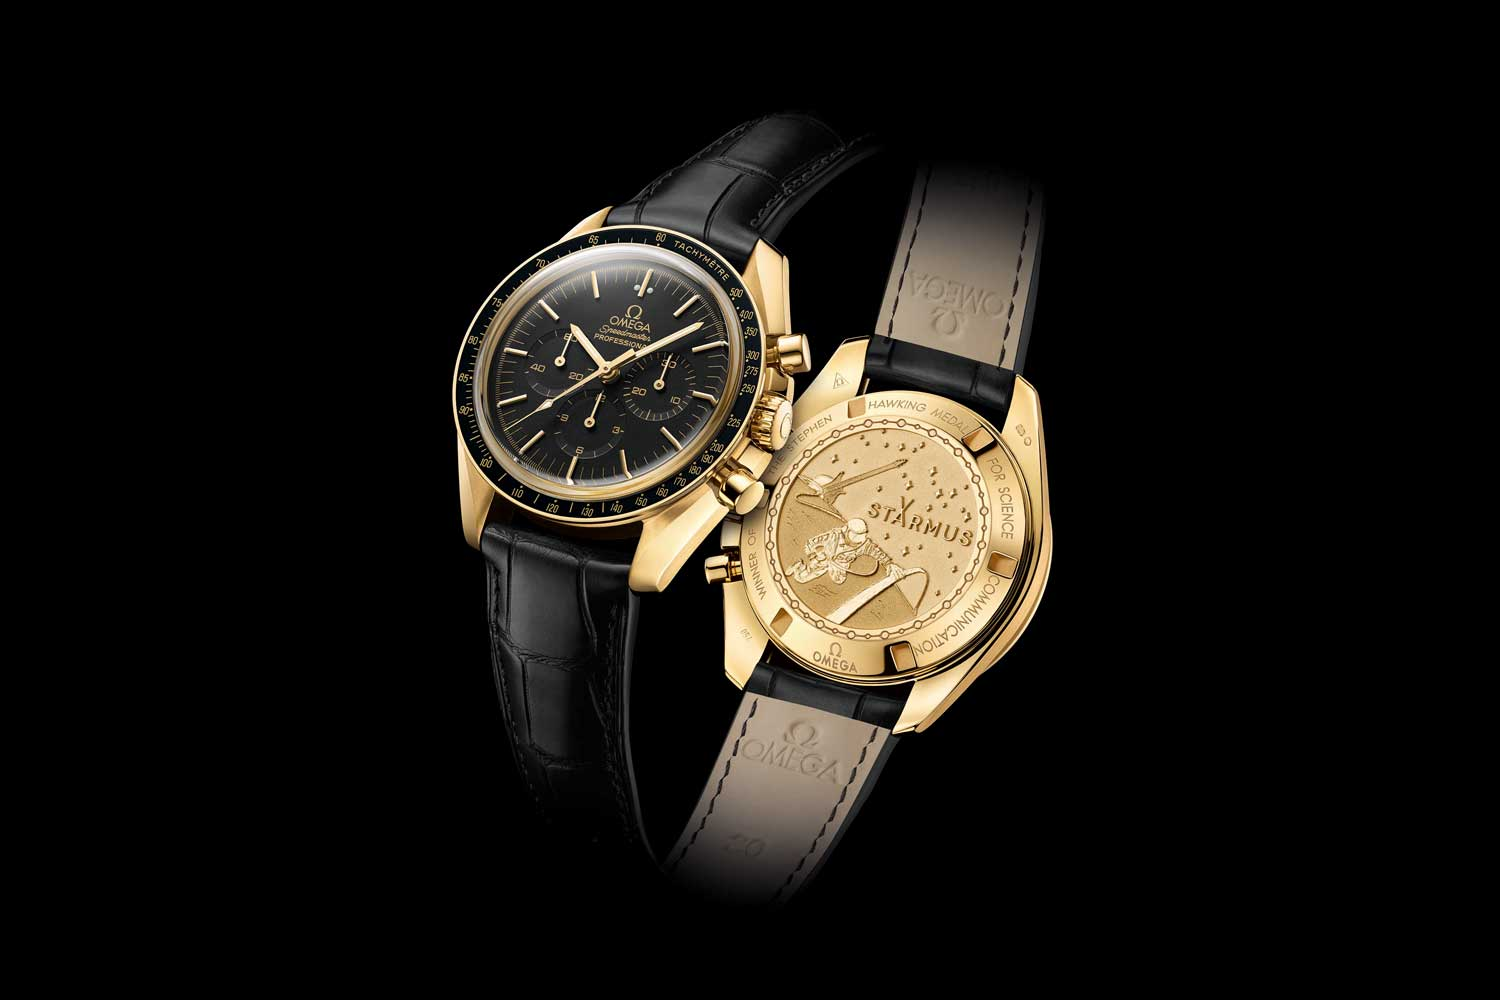 Starmus OMEGA Speedmaster Moonwatch Professional Chorongraph in 18k yellow gold